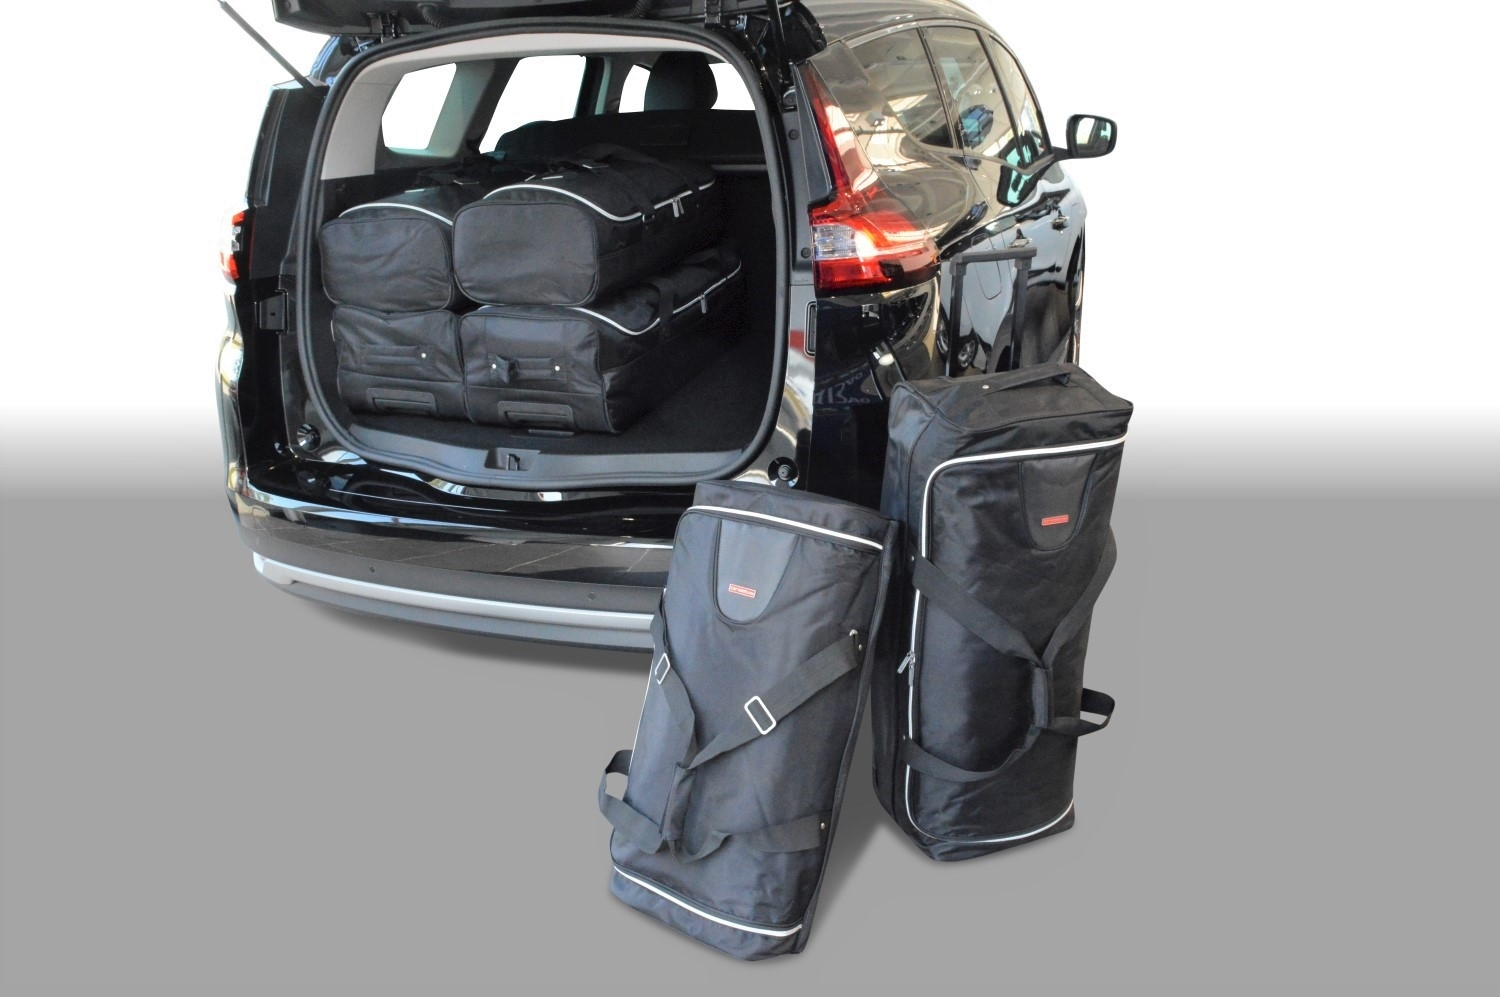 100 renault grand scenic luggage capacity renault grand scenic grand dynamique tomtom. Black Bedroom Furniture Sets. Home Design Ideas